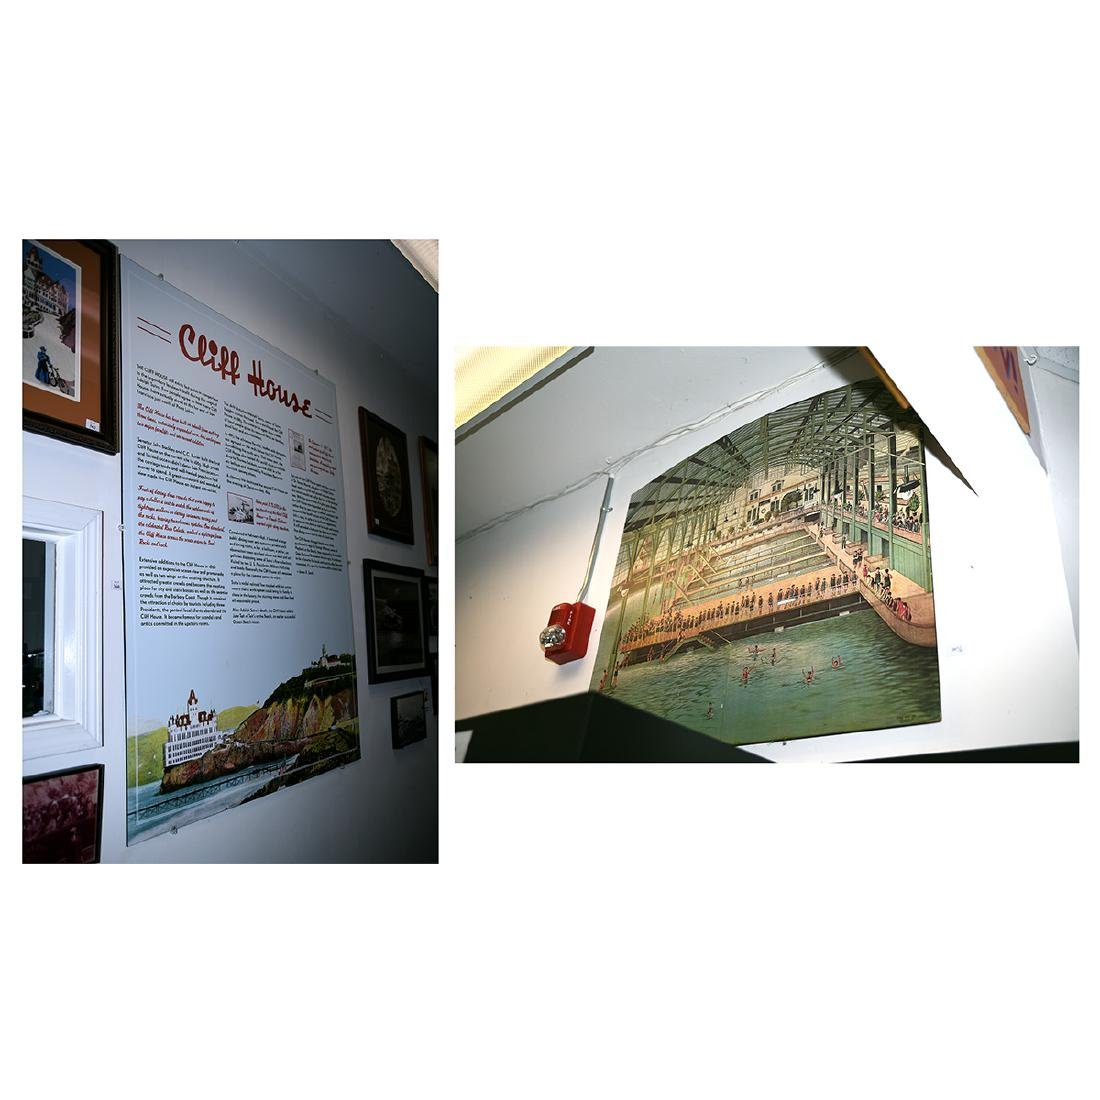 2  Sutro Baths Signs, 1 Particle Board / Other Plastic